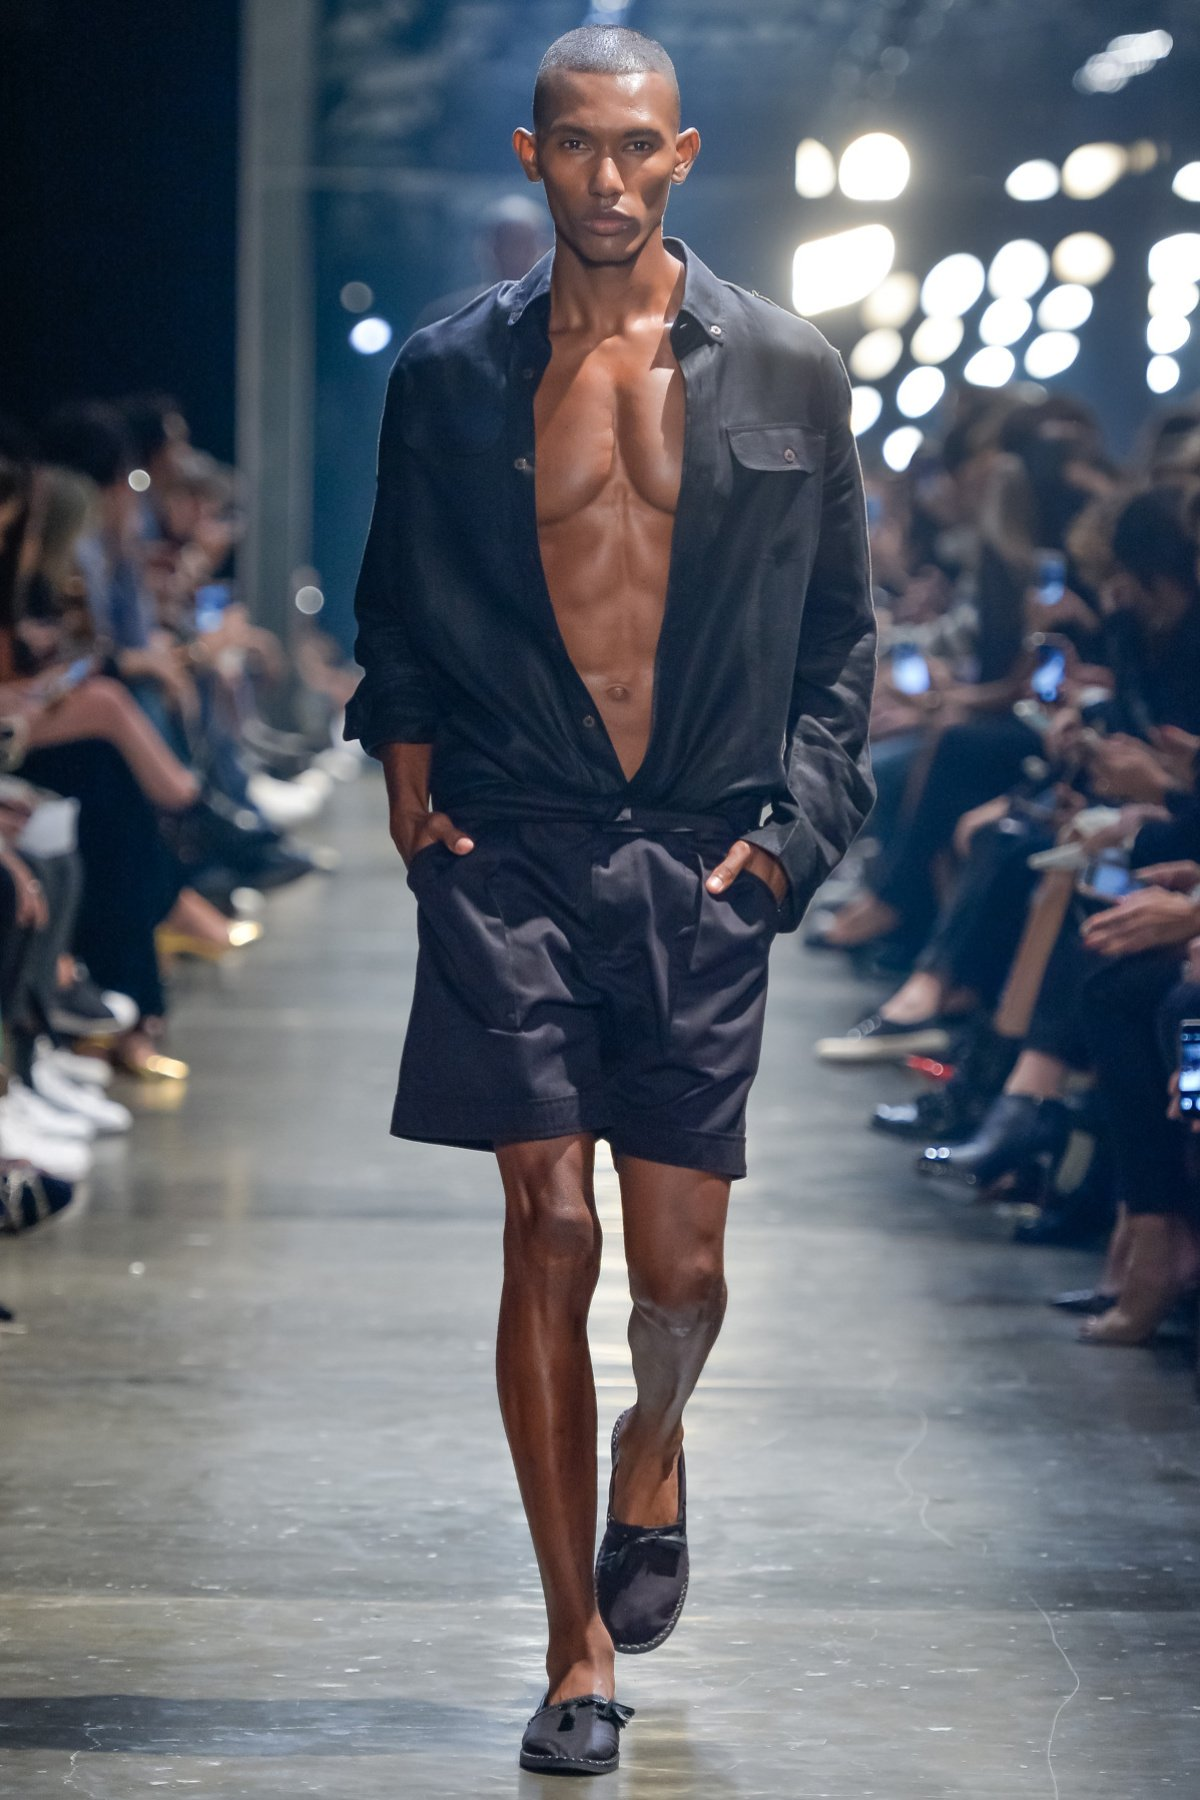 Just in, see BoFW's coverage of Murilo Lomas at Sao Paulo Fashion Week: https://t.co/GLmTfTpPOq #SPFW #BoFW https://t.co/VBKEdEeXe5